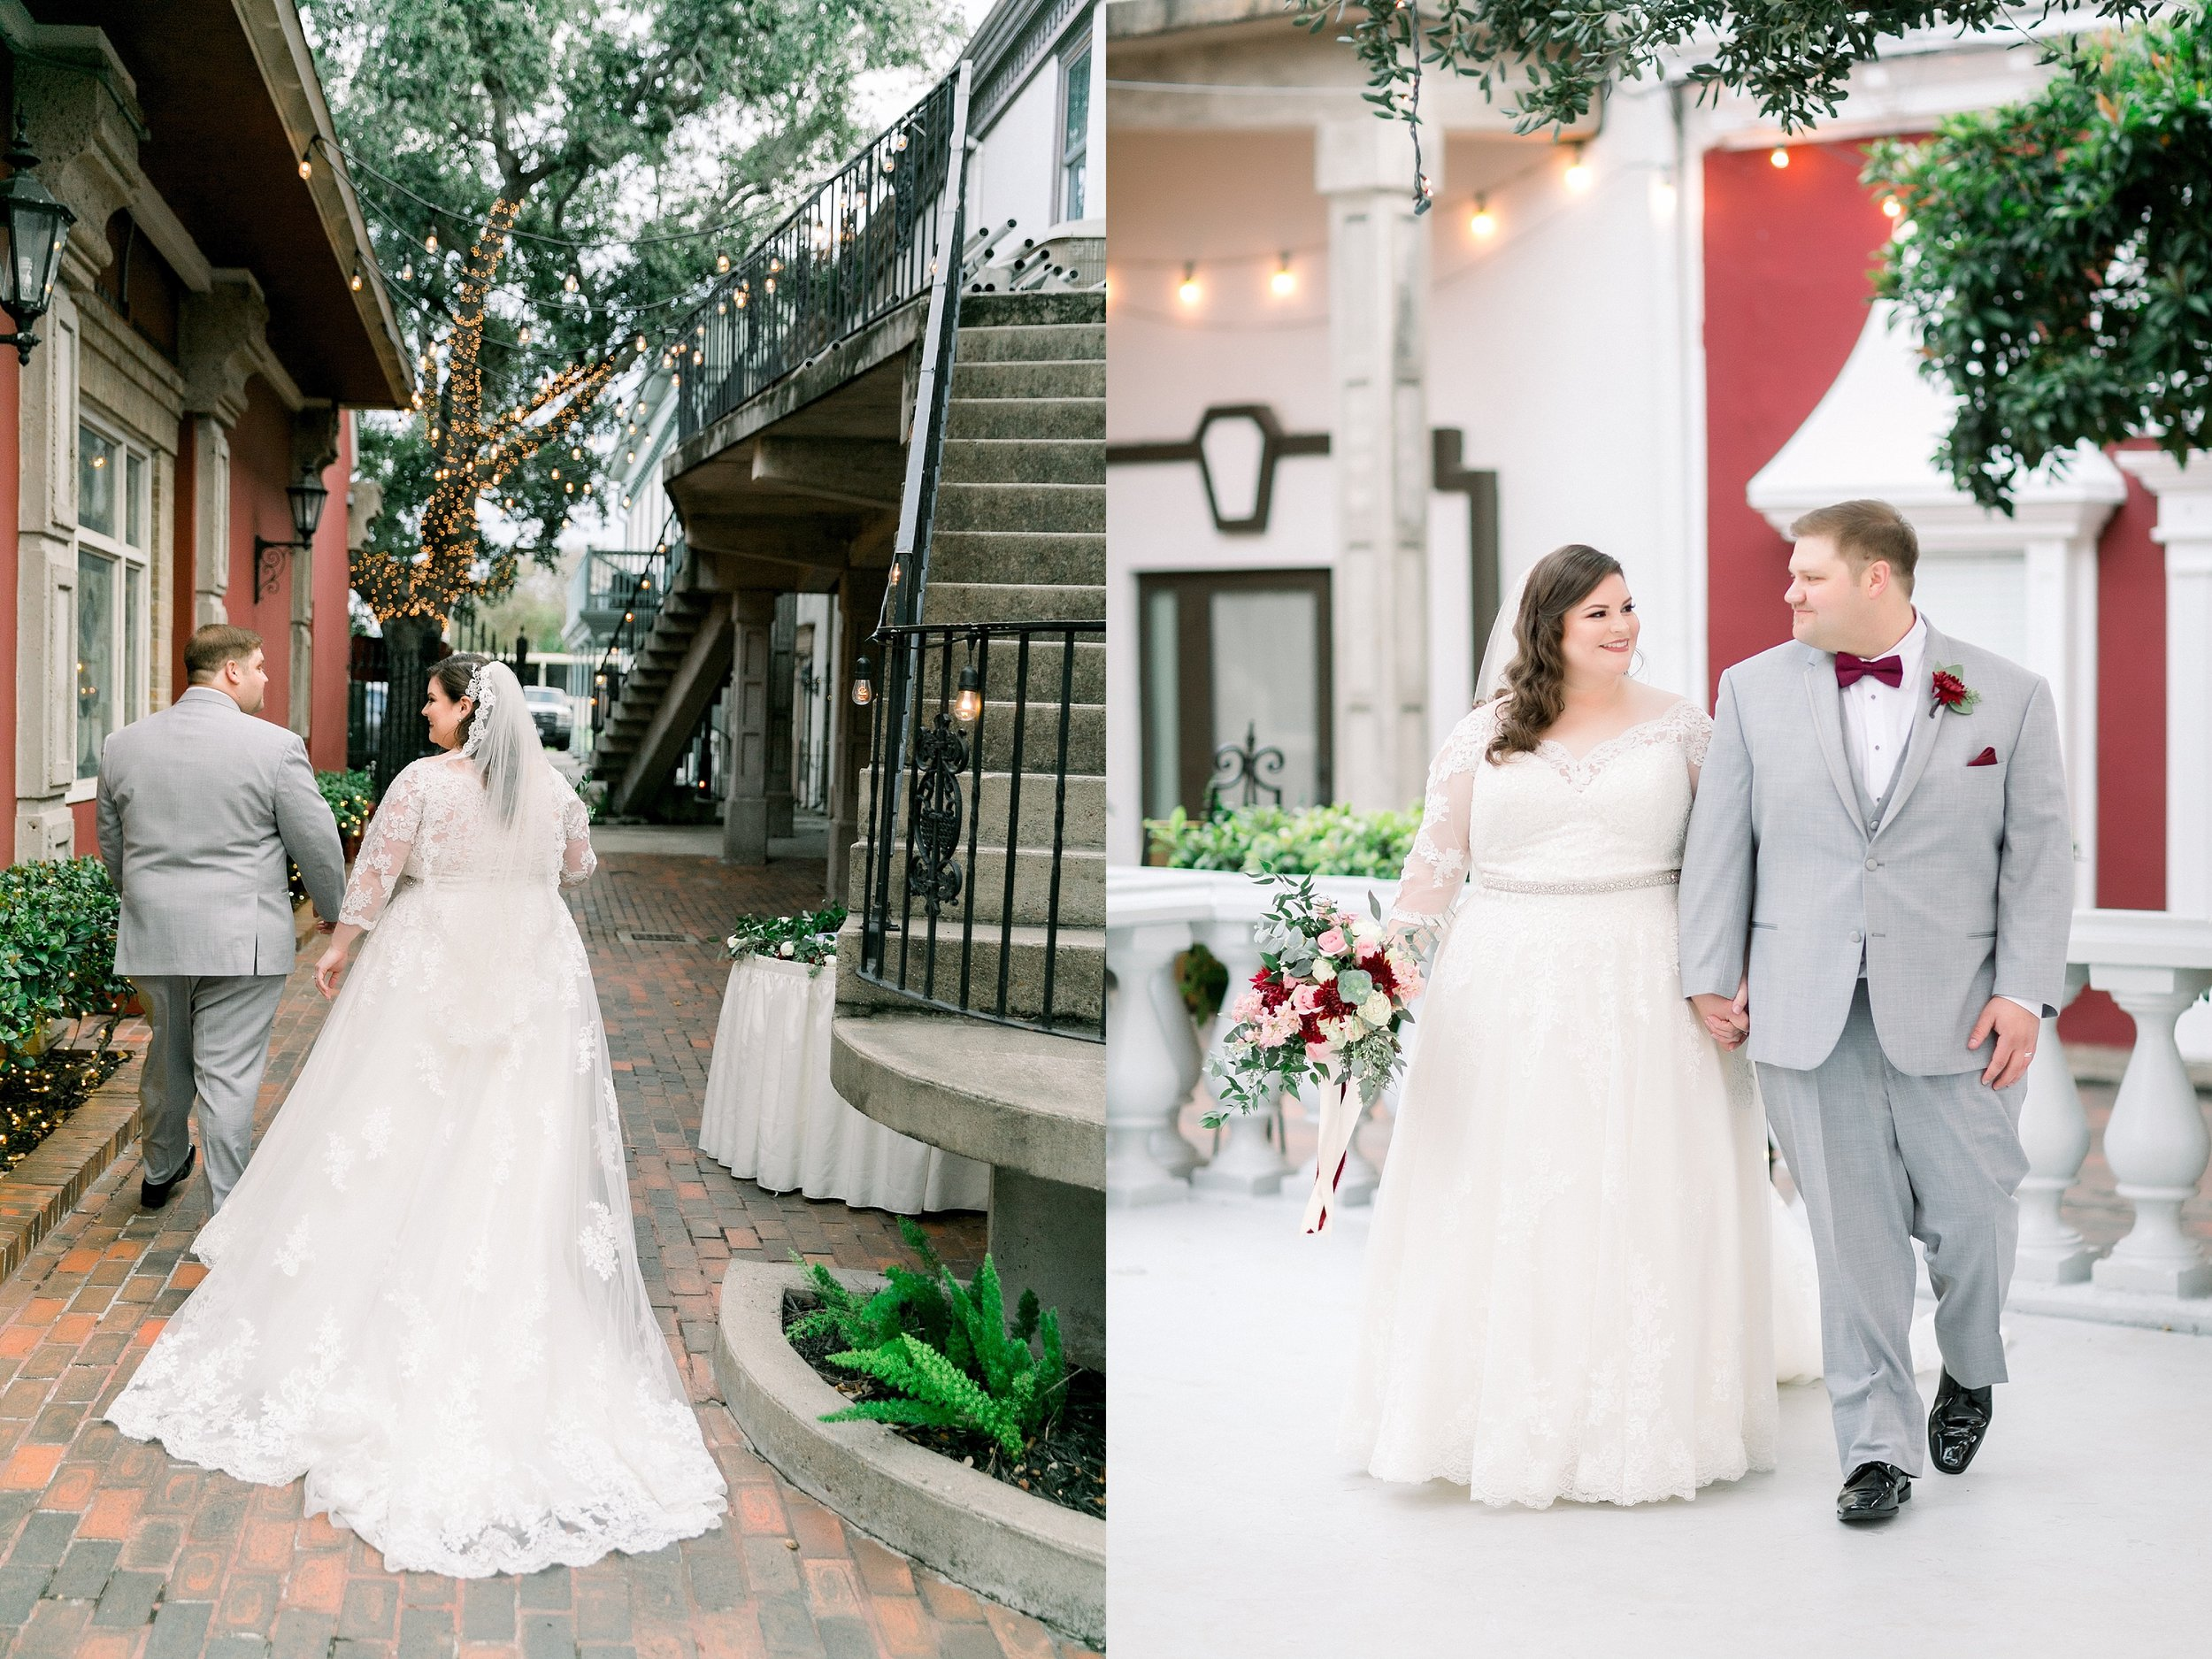 gaslight-at-courtyard-square-corpus-christi-wedding-omni-hotel-fall-winter-wedding-texas-wedding-photographer-lauren-pinson-0079.jpg